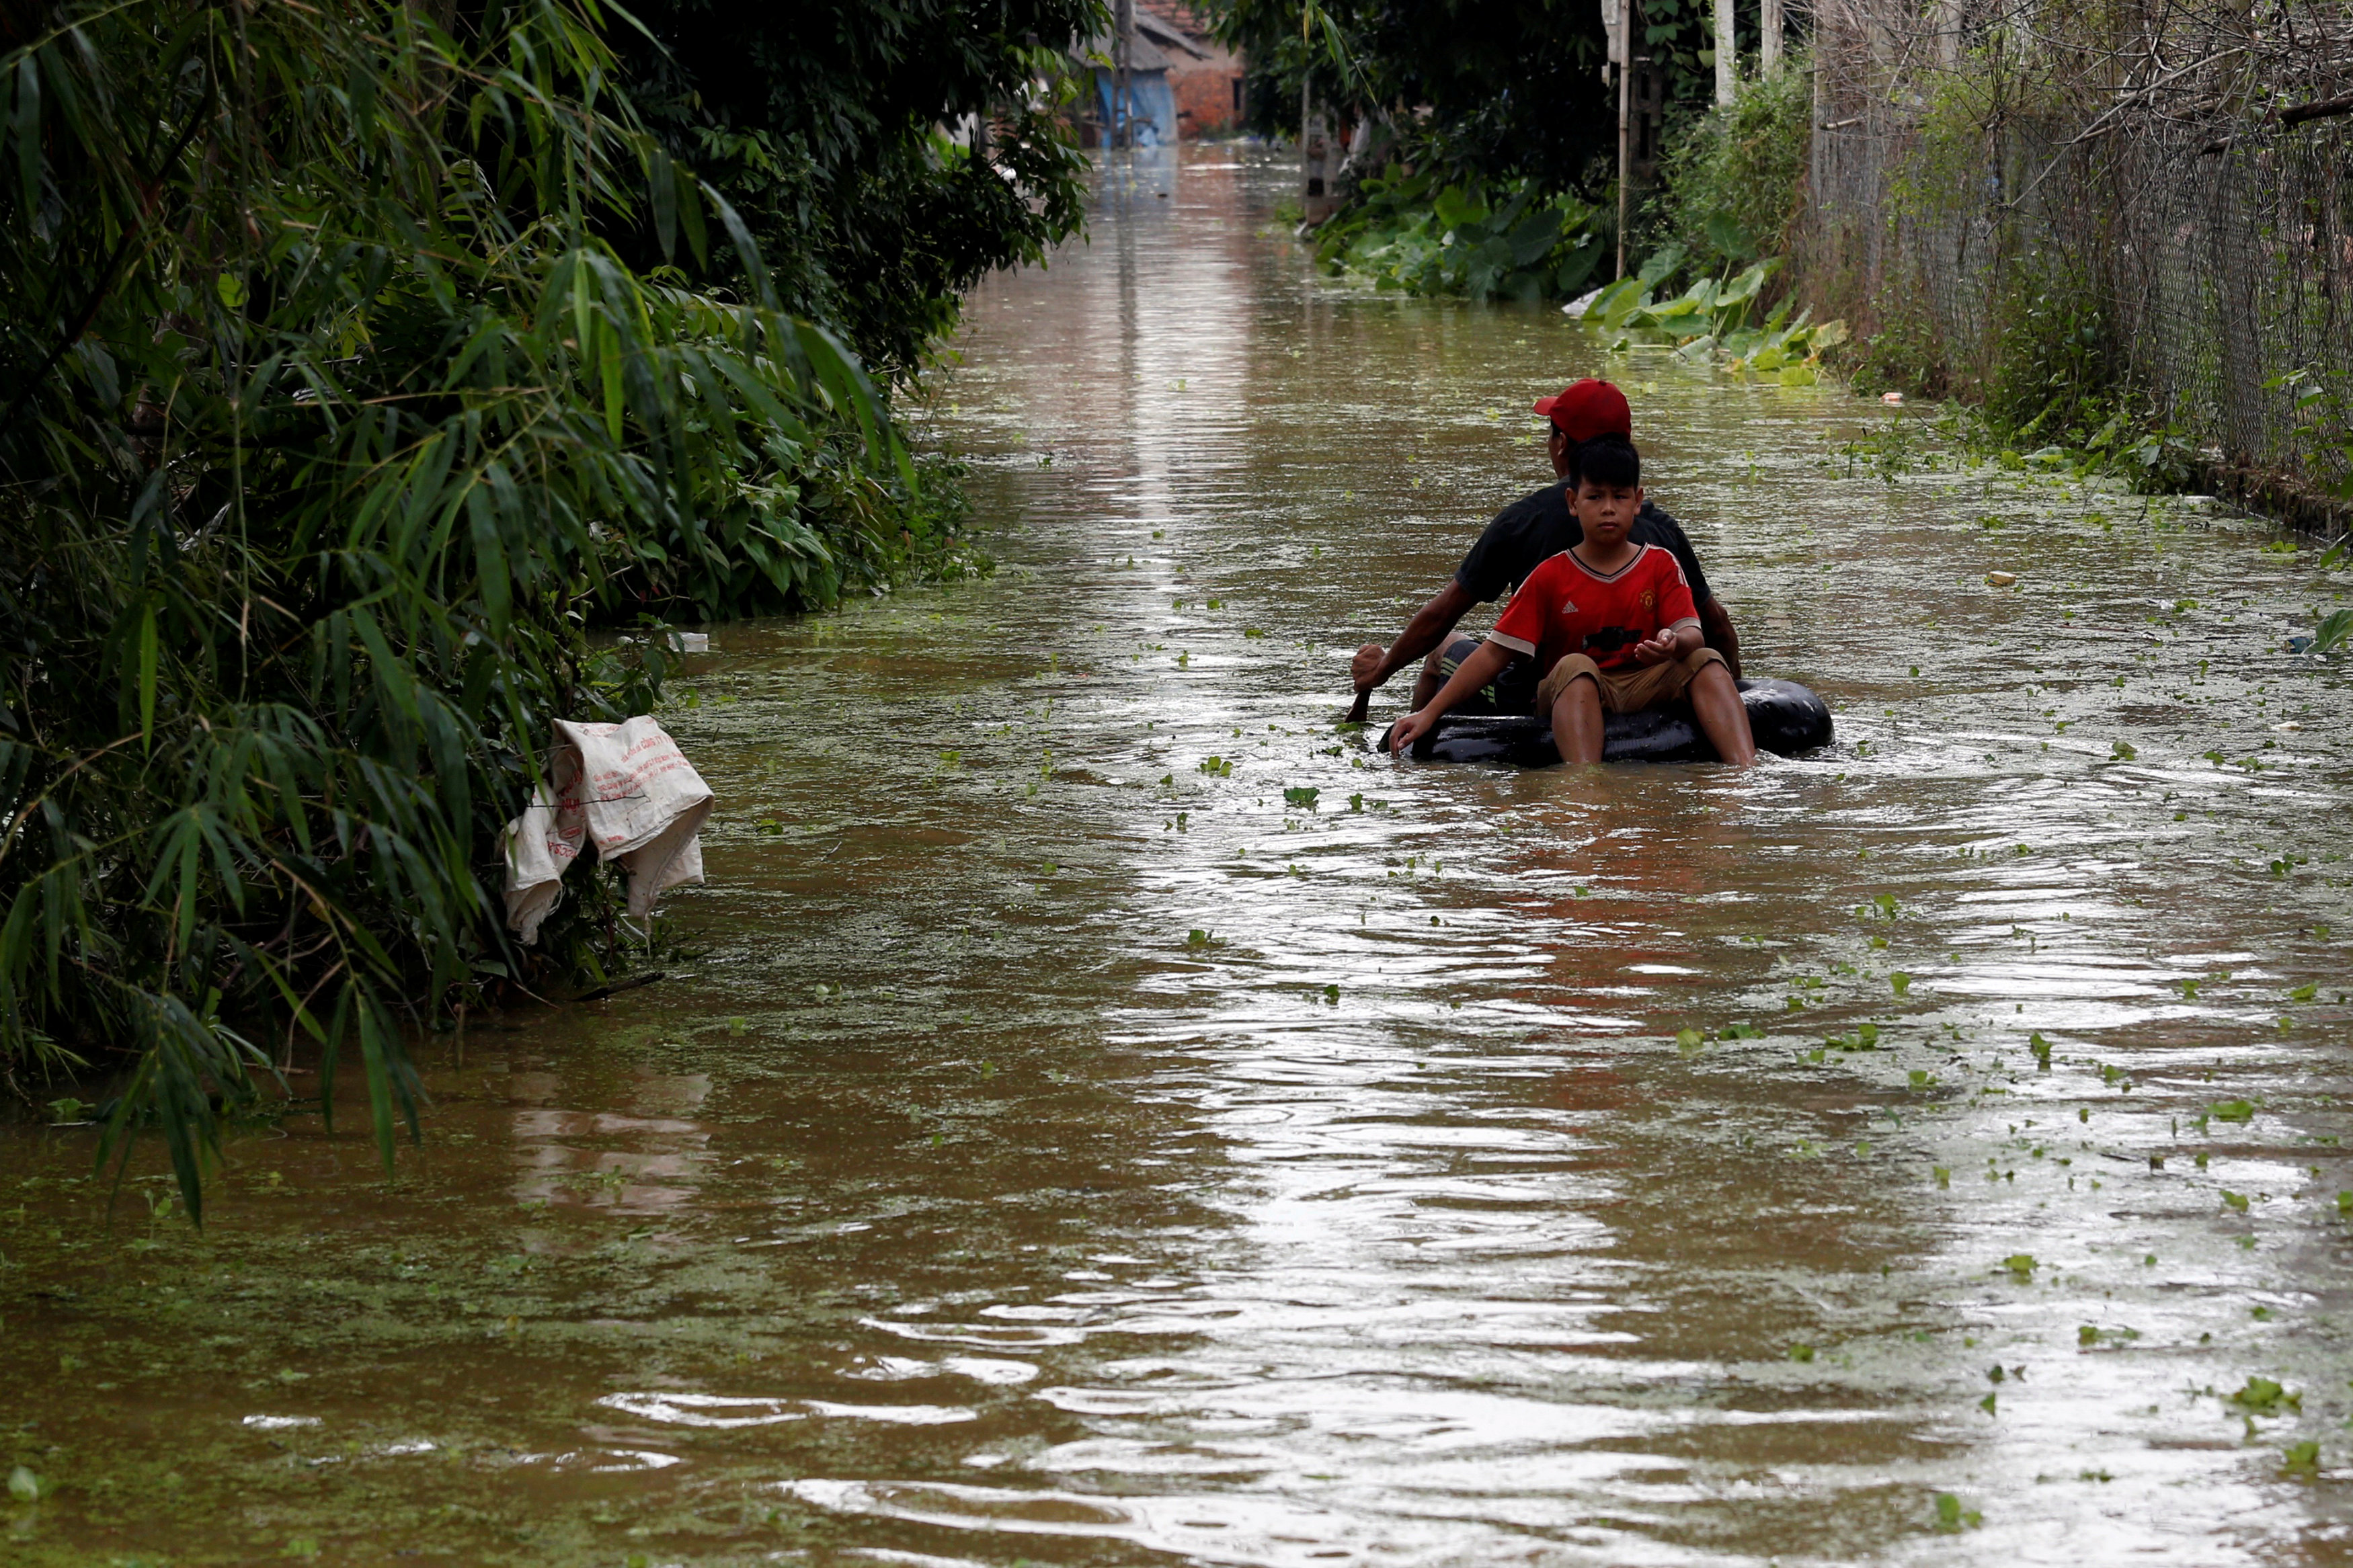 Boys paddle an improvised boat in a flooded village after a tropical depression in Hanoi, Vietnam October 13, 2017. Photo: Reuters